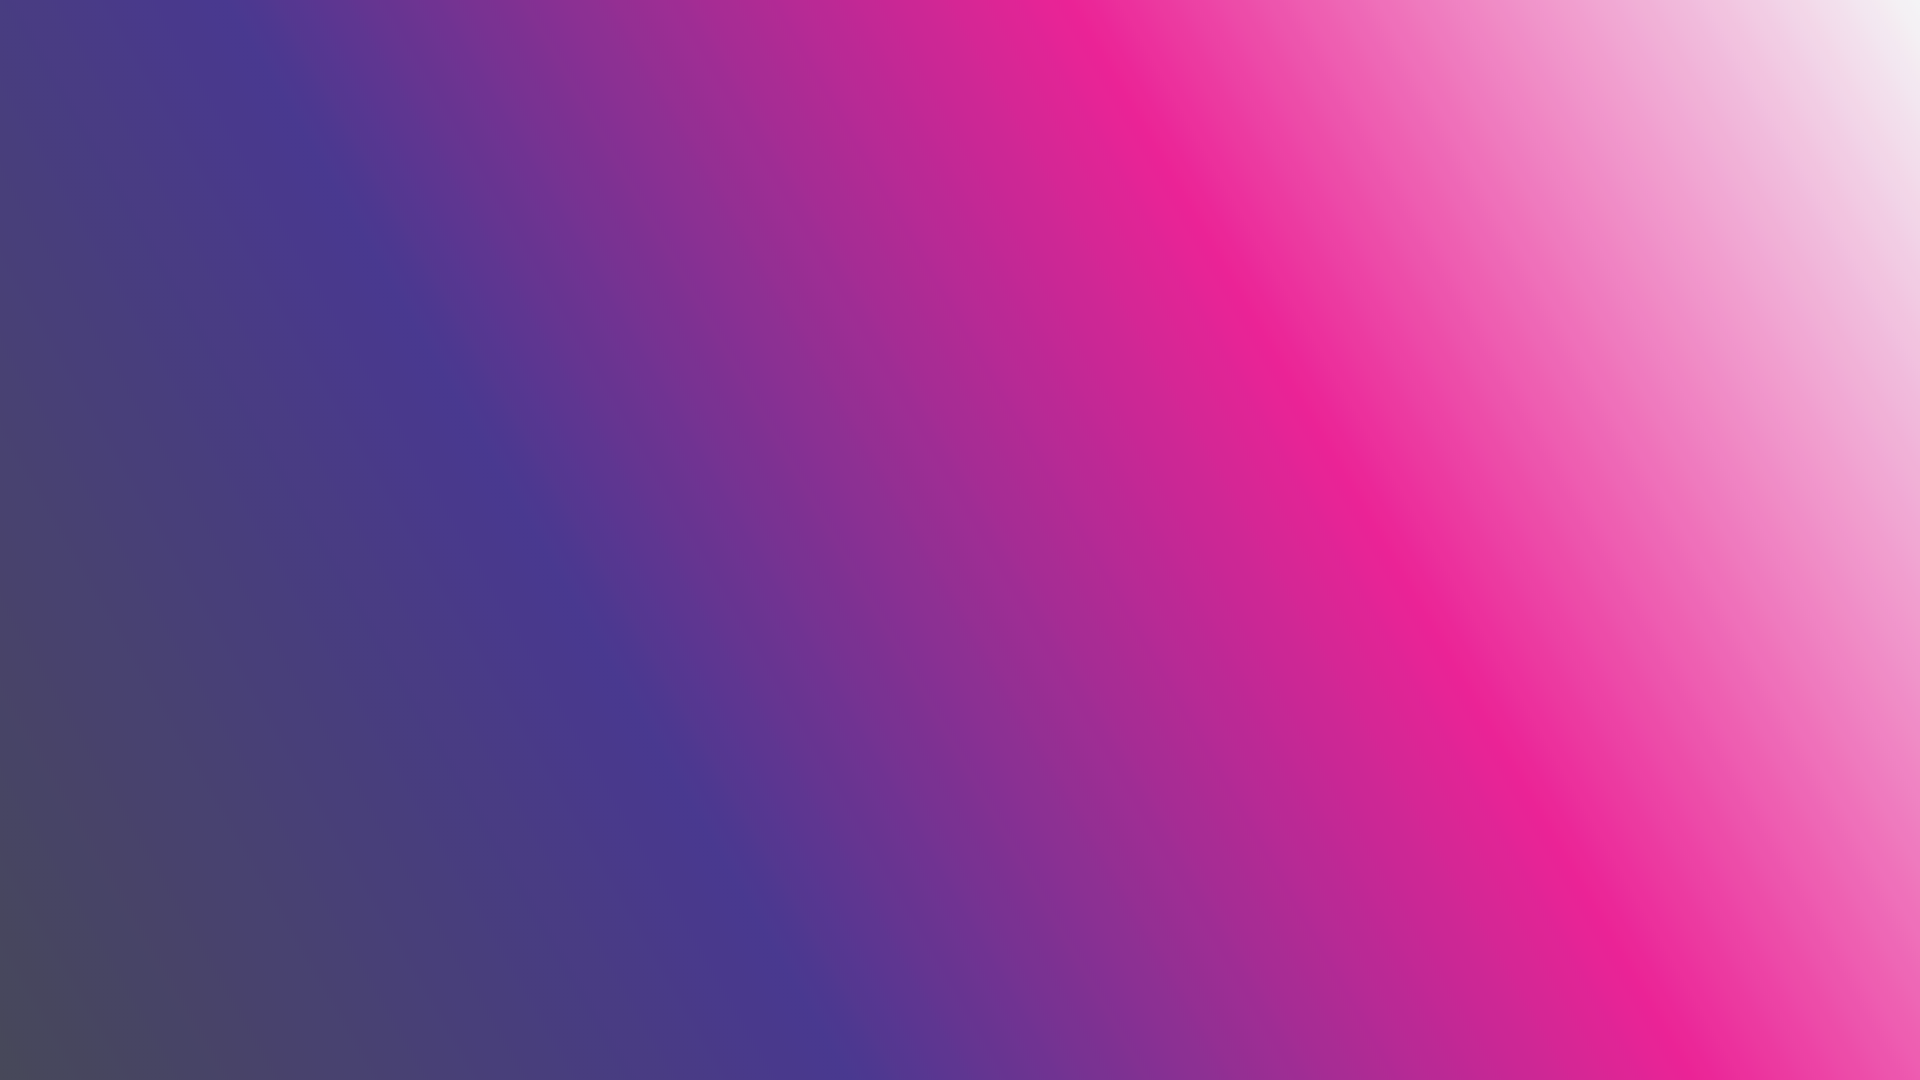 Lyft Hex Colors CSS Gradient Brand Gradients 1920x1080